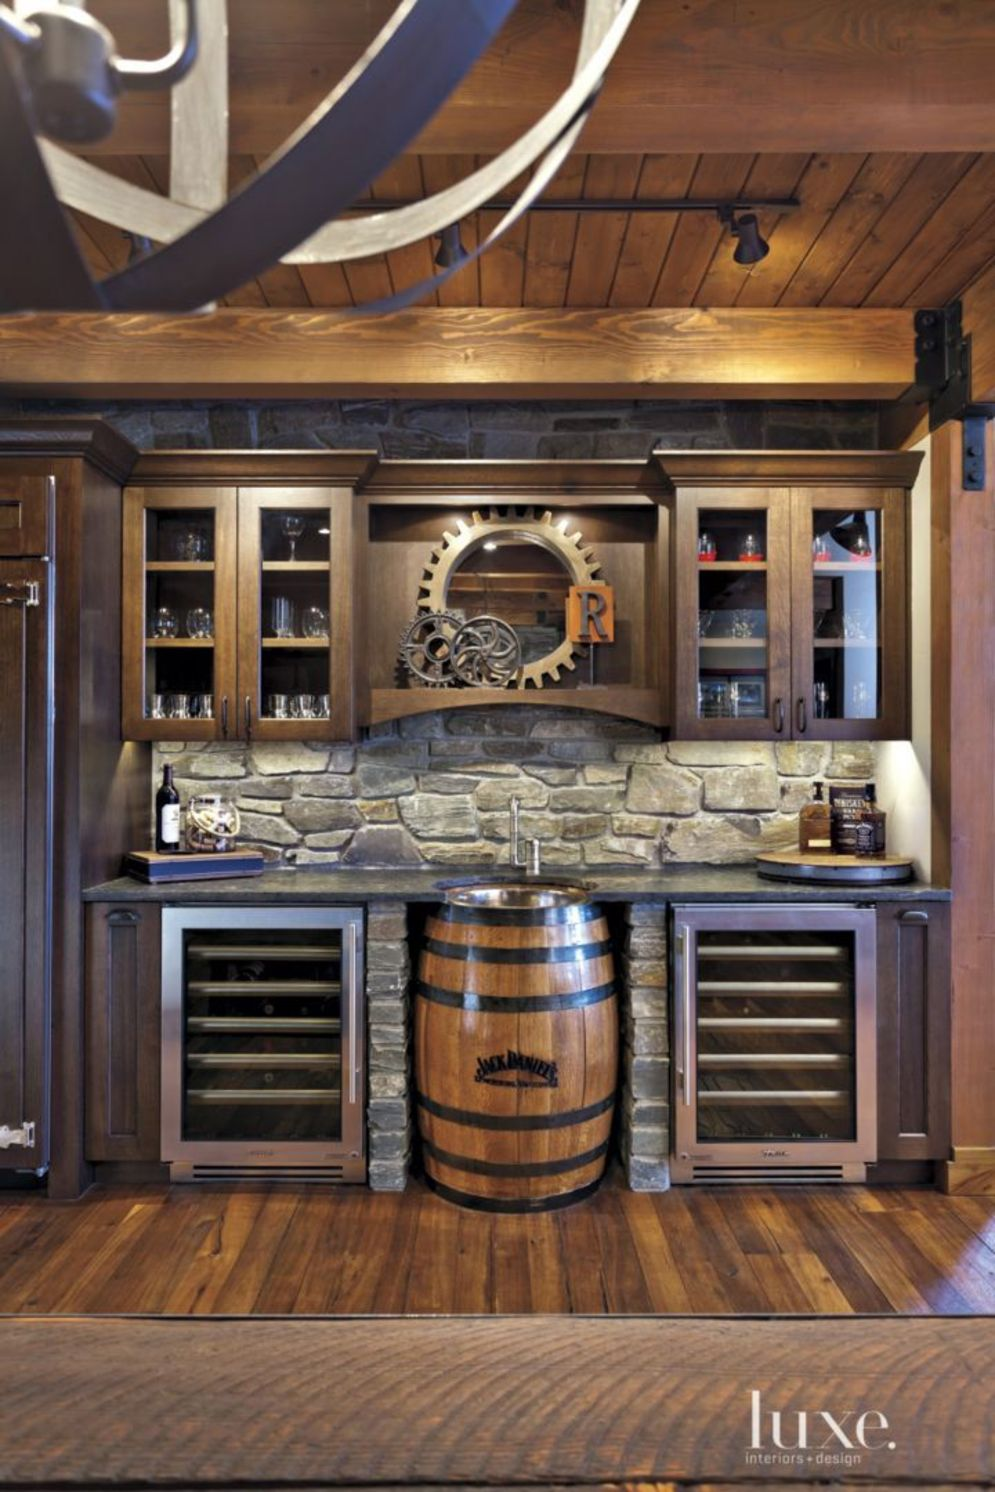 Rustic cabin kitchen designs showing warm wooden structure in earthy natural palettes Image 2